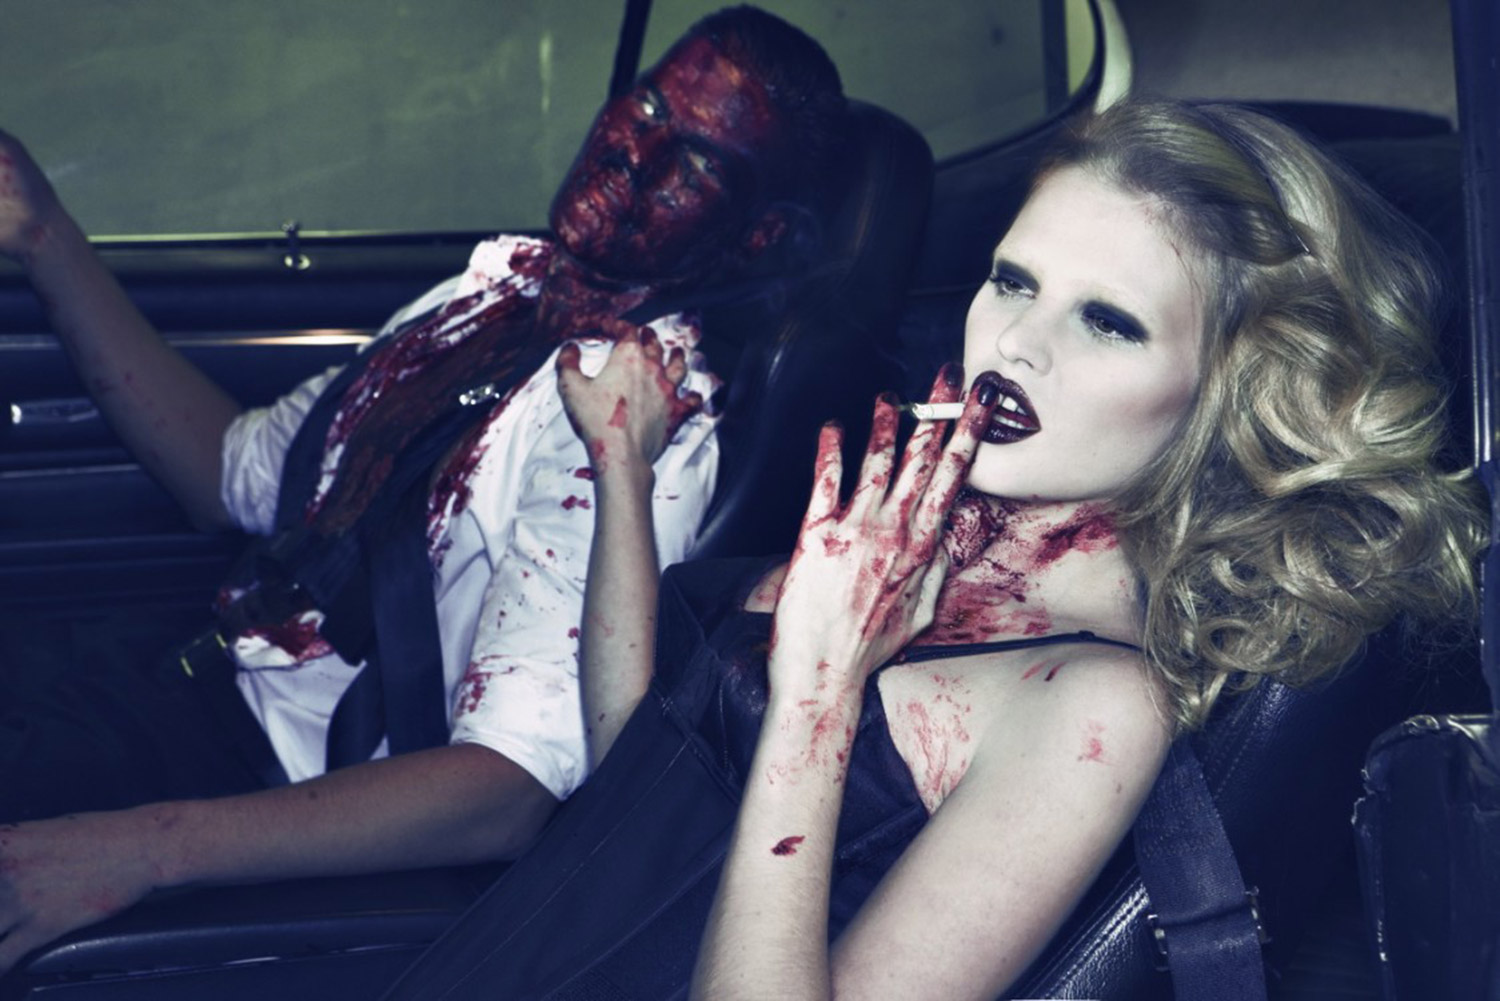 Steven Klein, for Vogue - woman smoking cigarette in car next to bloodied man